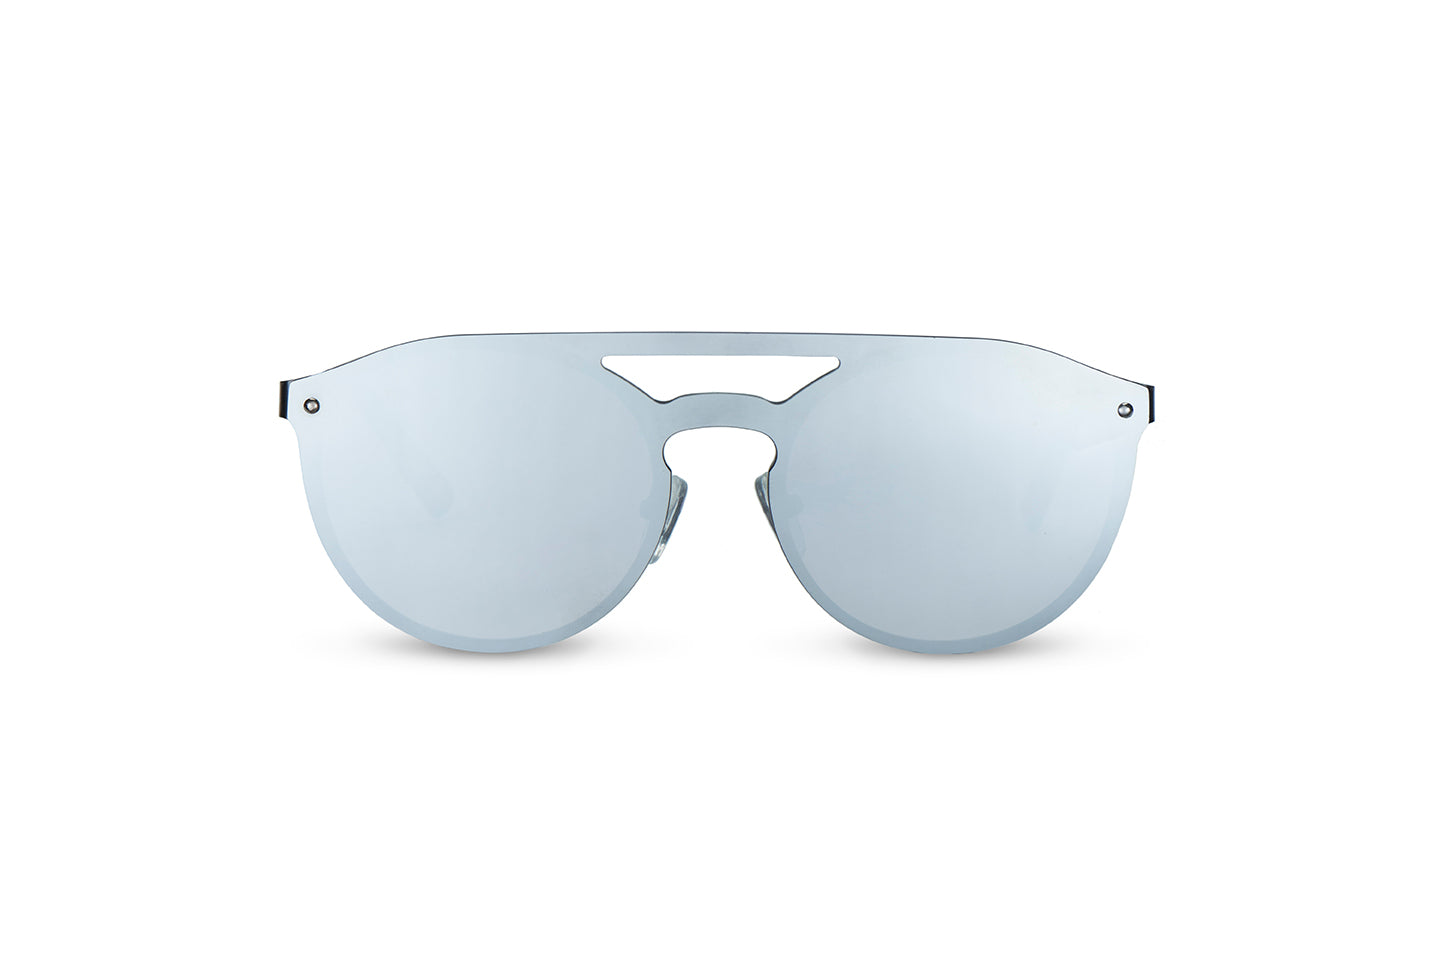 ocean sunglasses KRNglasses model ALEX SKU AE001 with gun frame and grey mirror lens